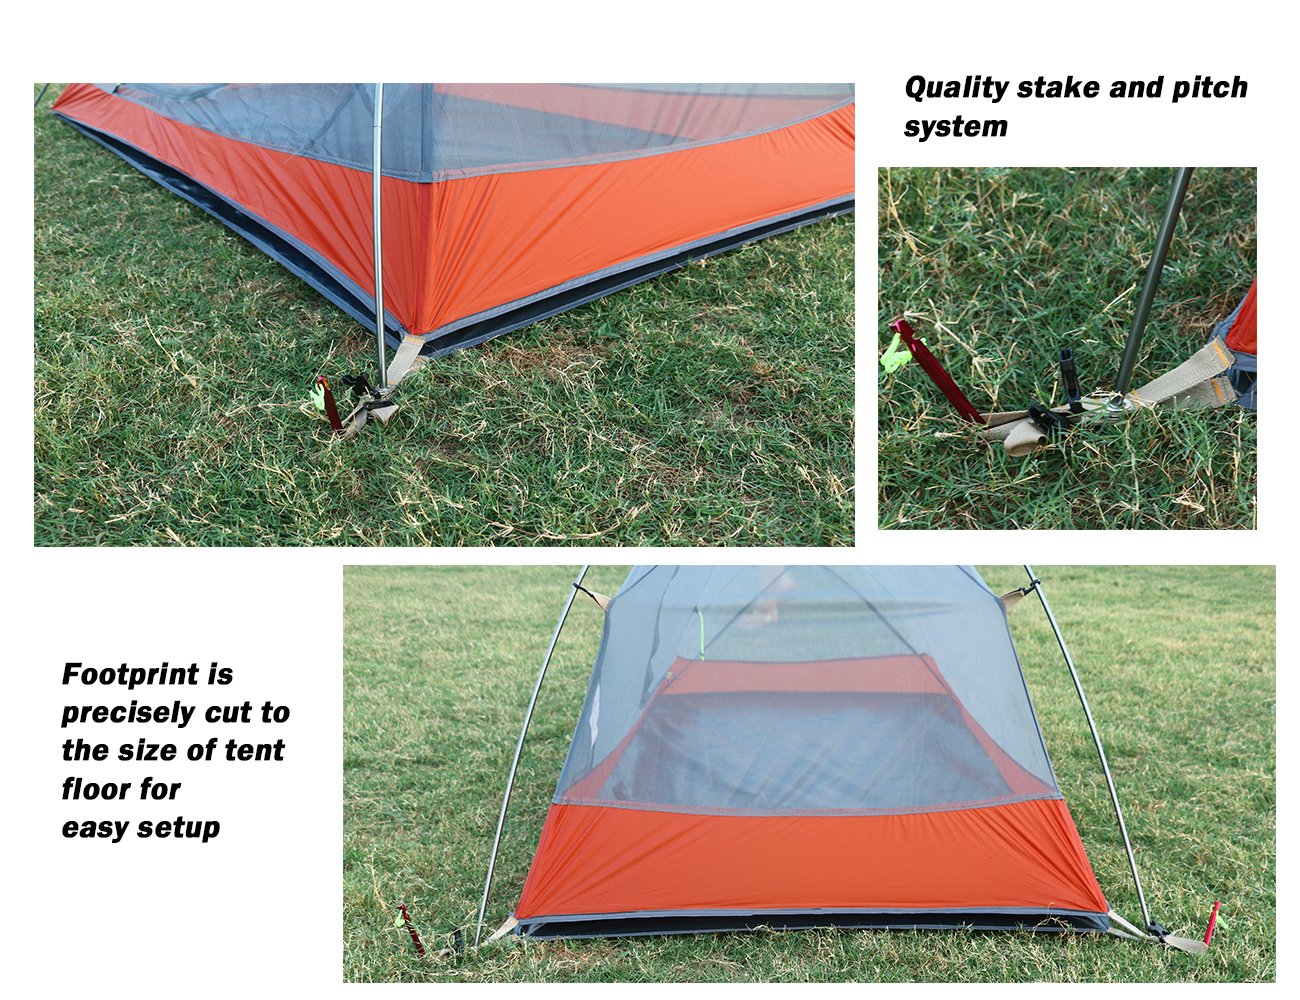 Luxe Tempo Ultralight 1 Person Tent with Footprint 3.3lb Backpacking Hiking SIL Nylon Solo Hiking Bike Motorcycle Camping